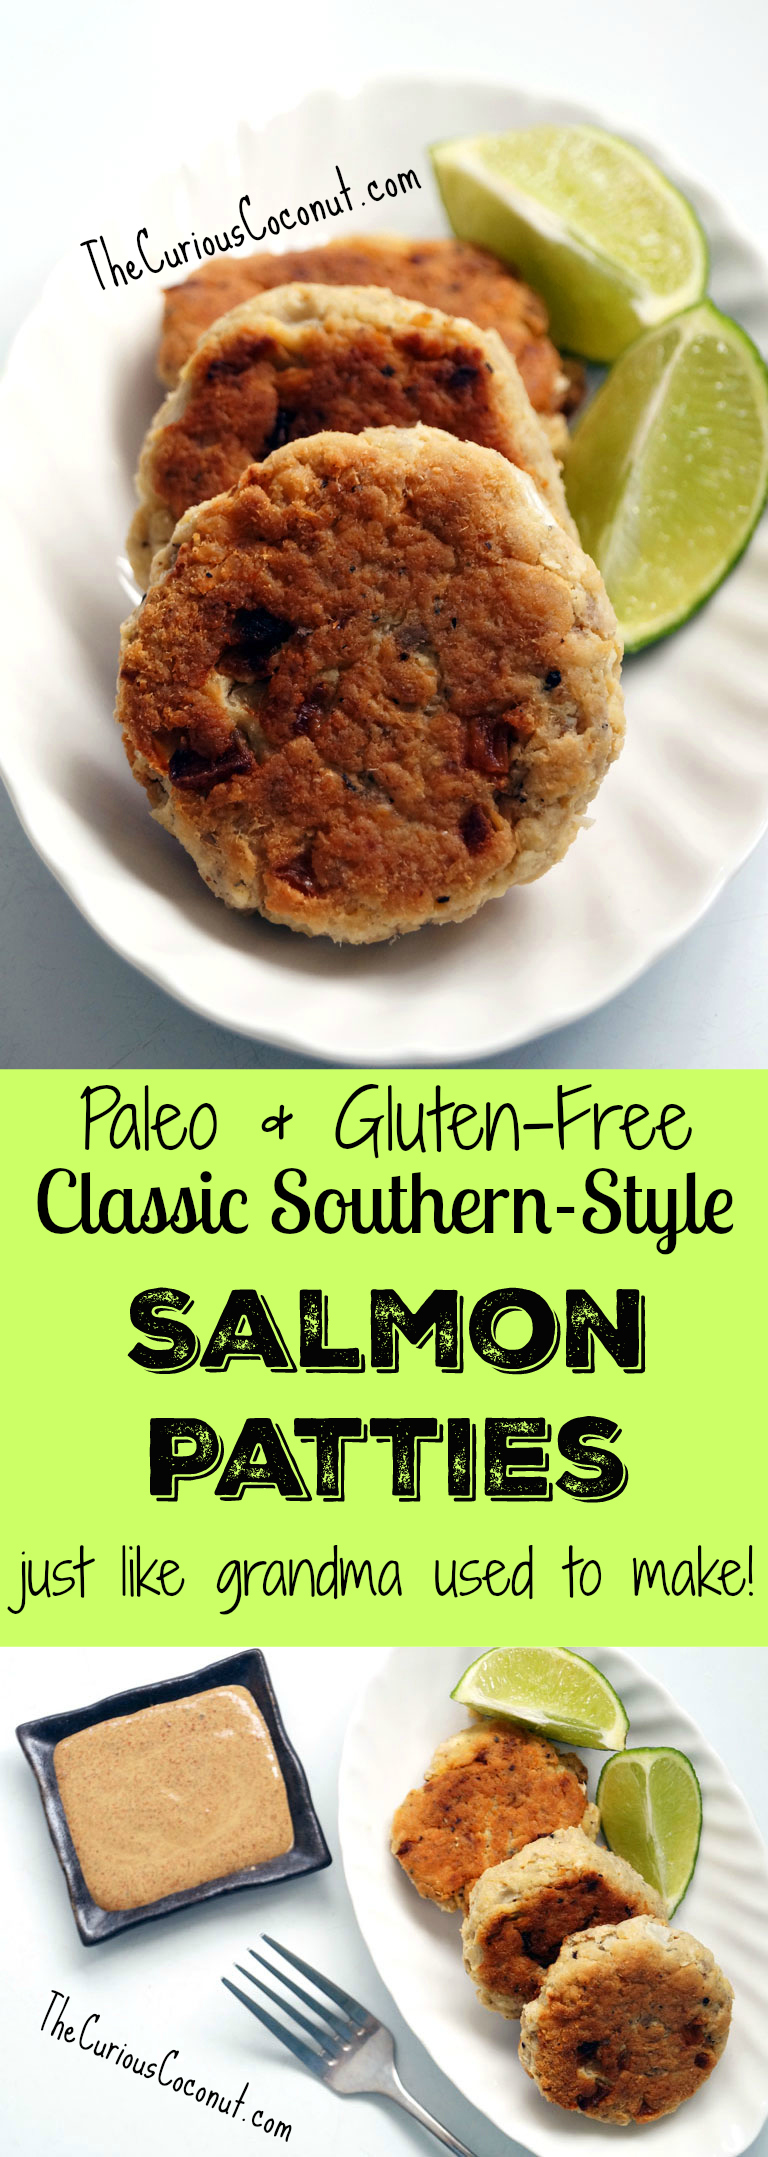 Just like Grandma used to make - Southern-style salmon patties with a secret sauce! Paleo and gluten-free. // TheCuriousCoconut.com